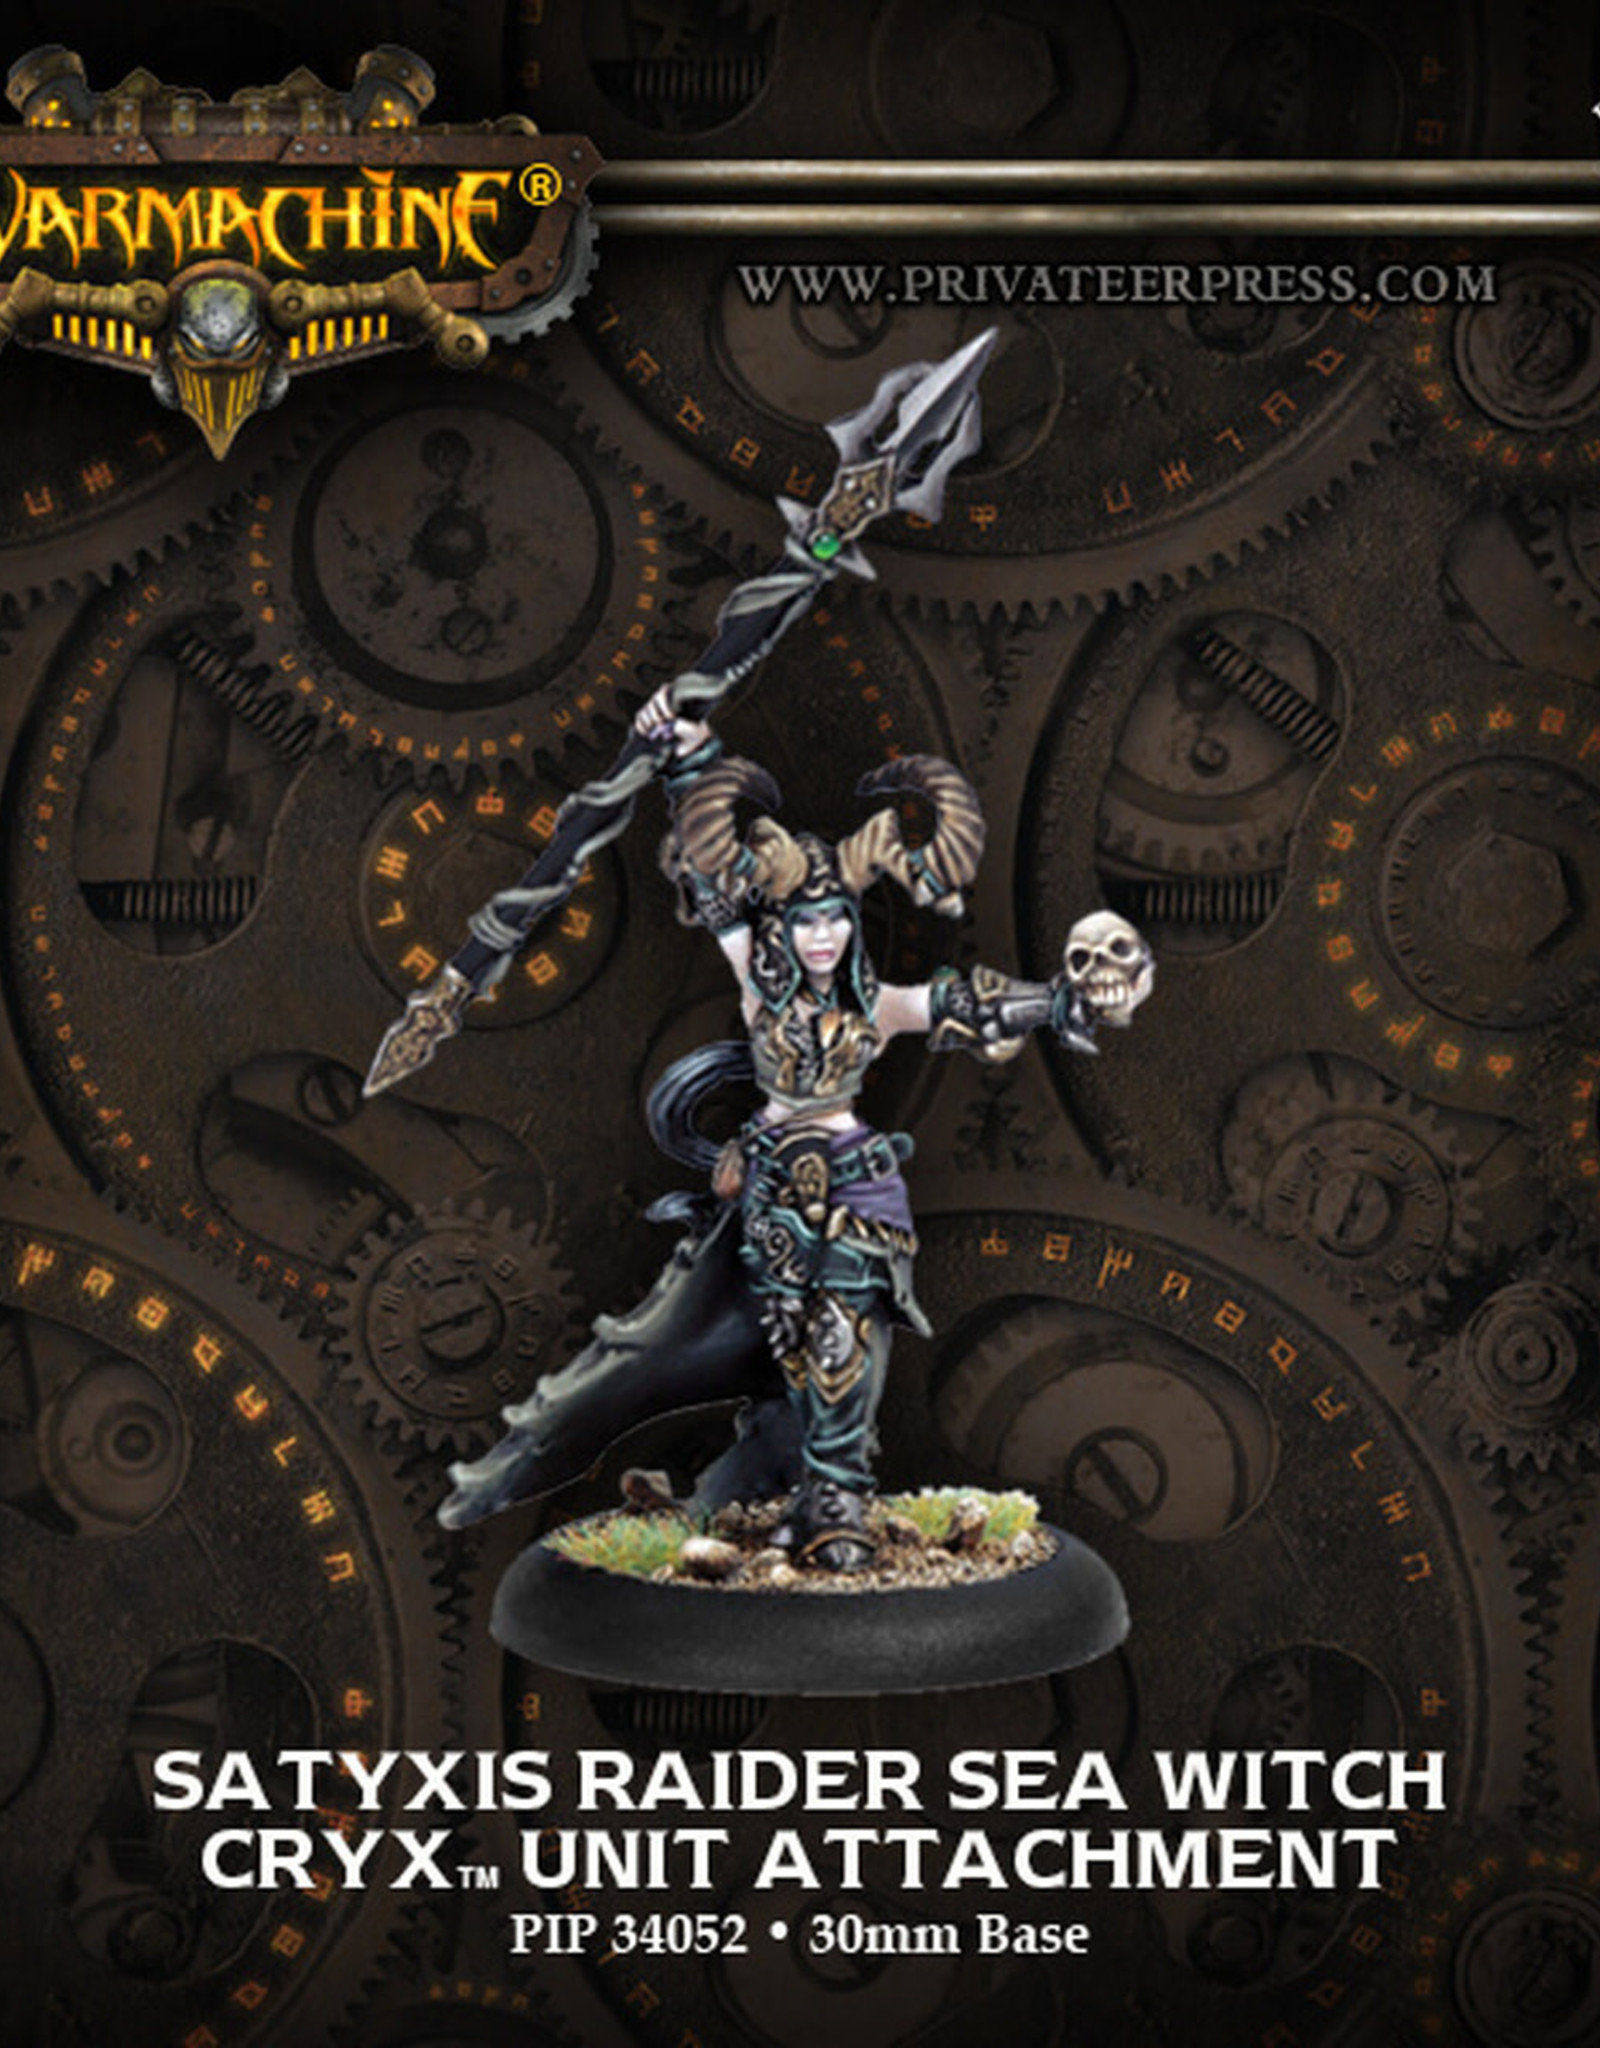 Warmachine Cryx - Sea Witch Attachment